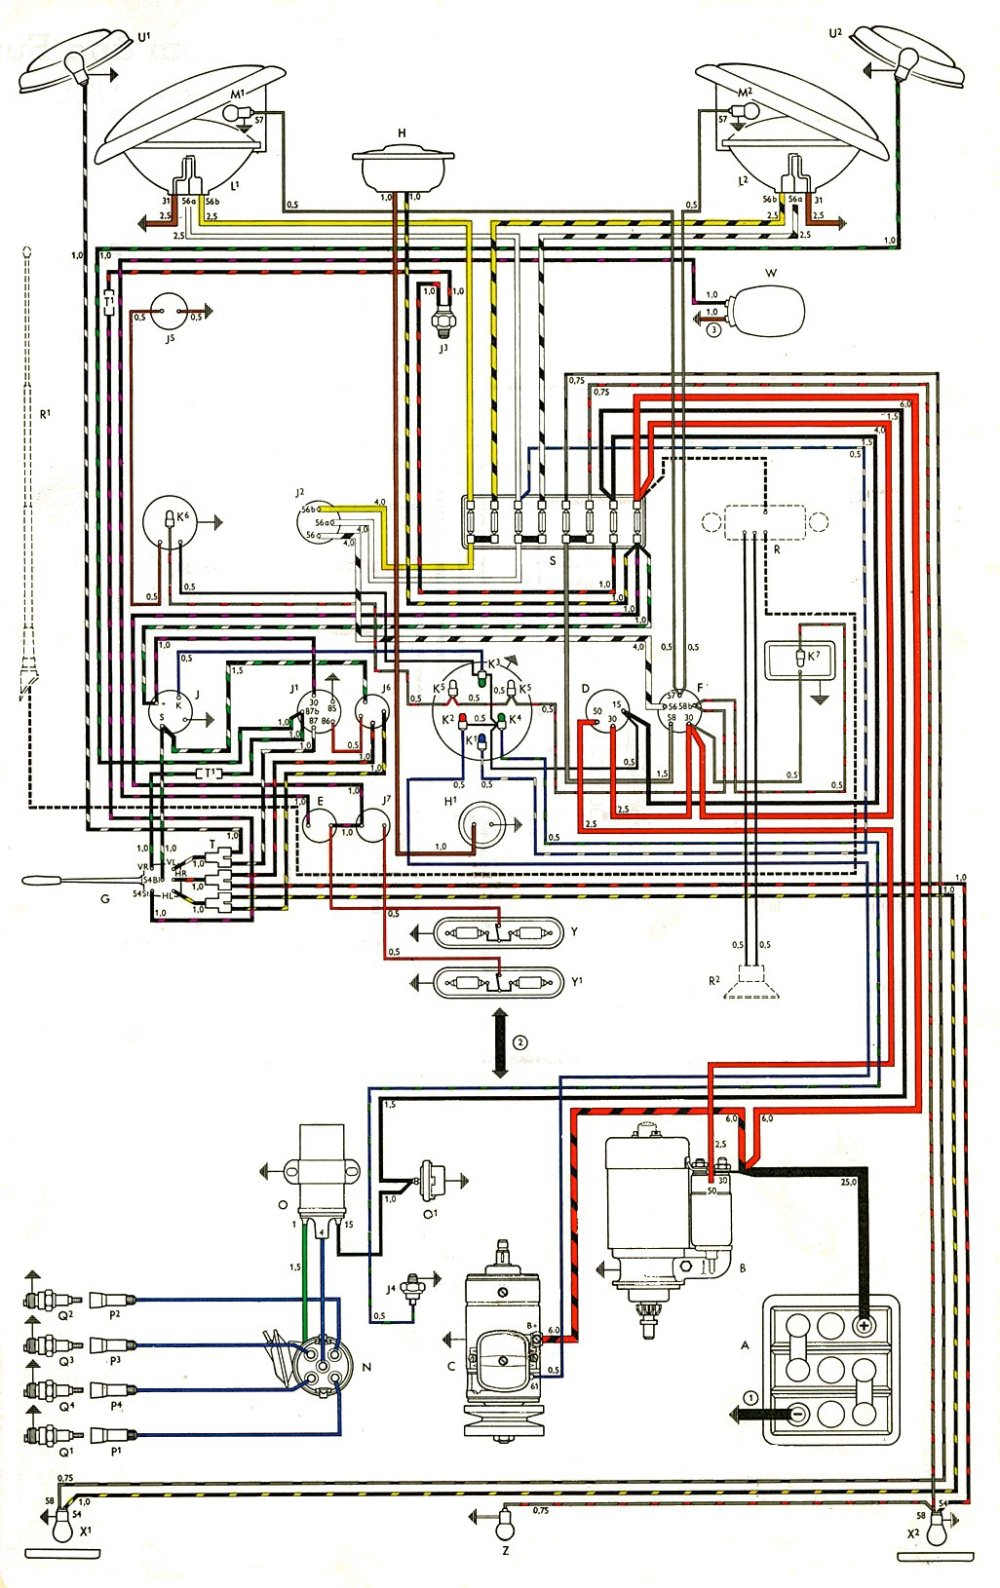 medium resolution of thesamba com type 2 wiring diagrams wiring diagram beetle compleat idiot